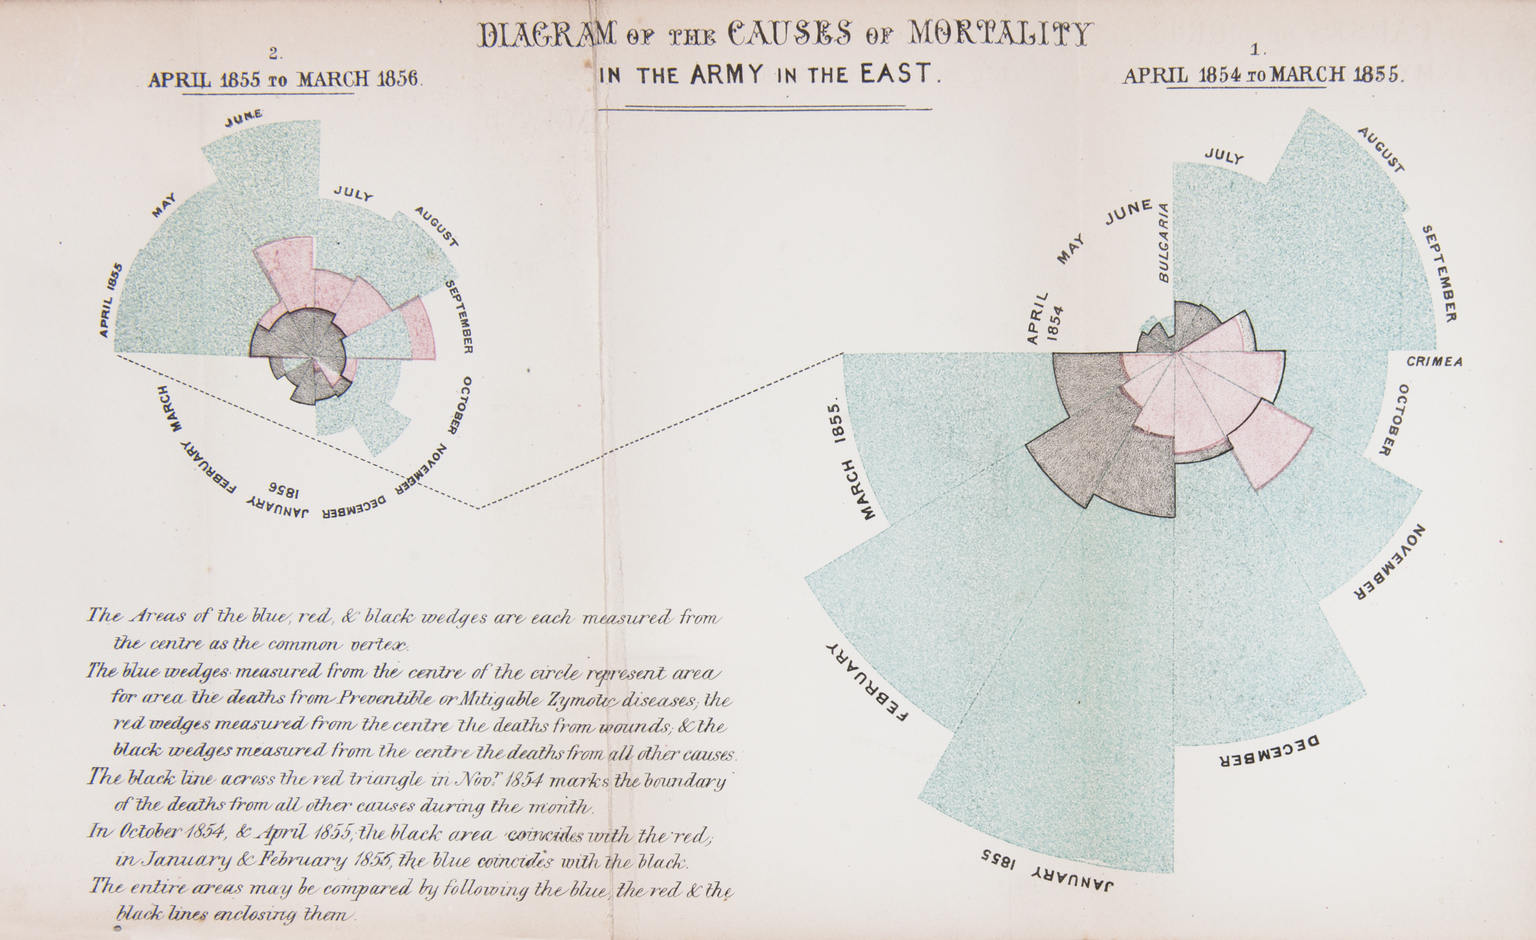 essay on florence nightingale Florence nightingale is highly acclaimed for her contribution to the nursing profession and public health care she was responsible for formalizing the nursing.